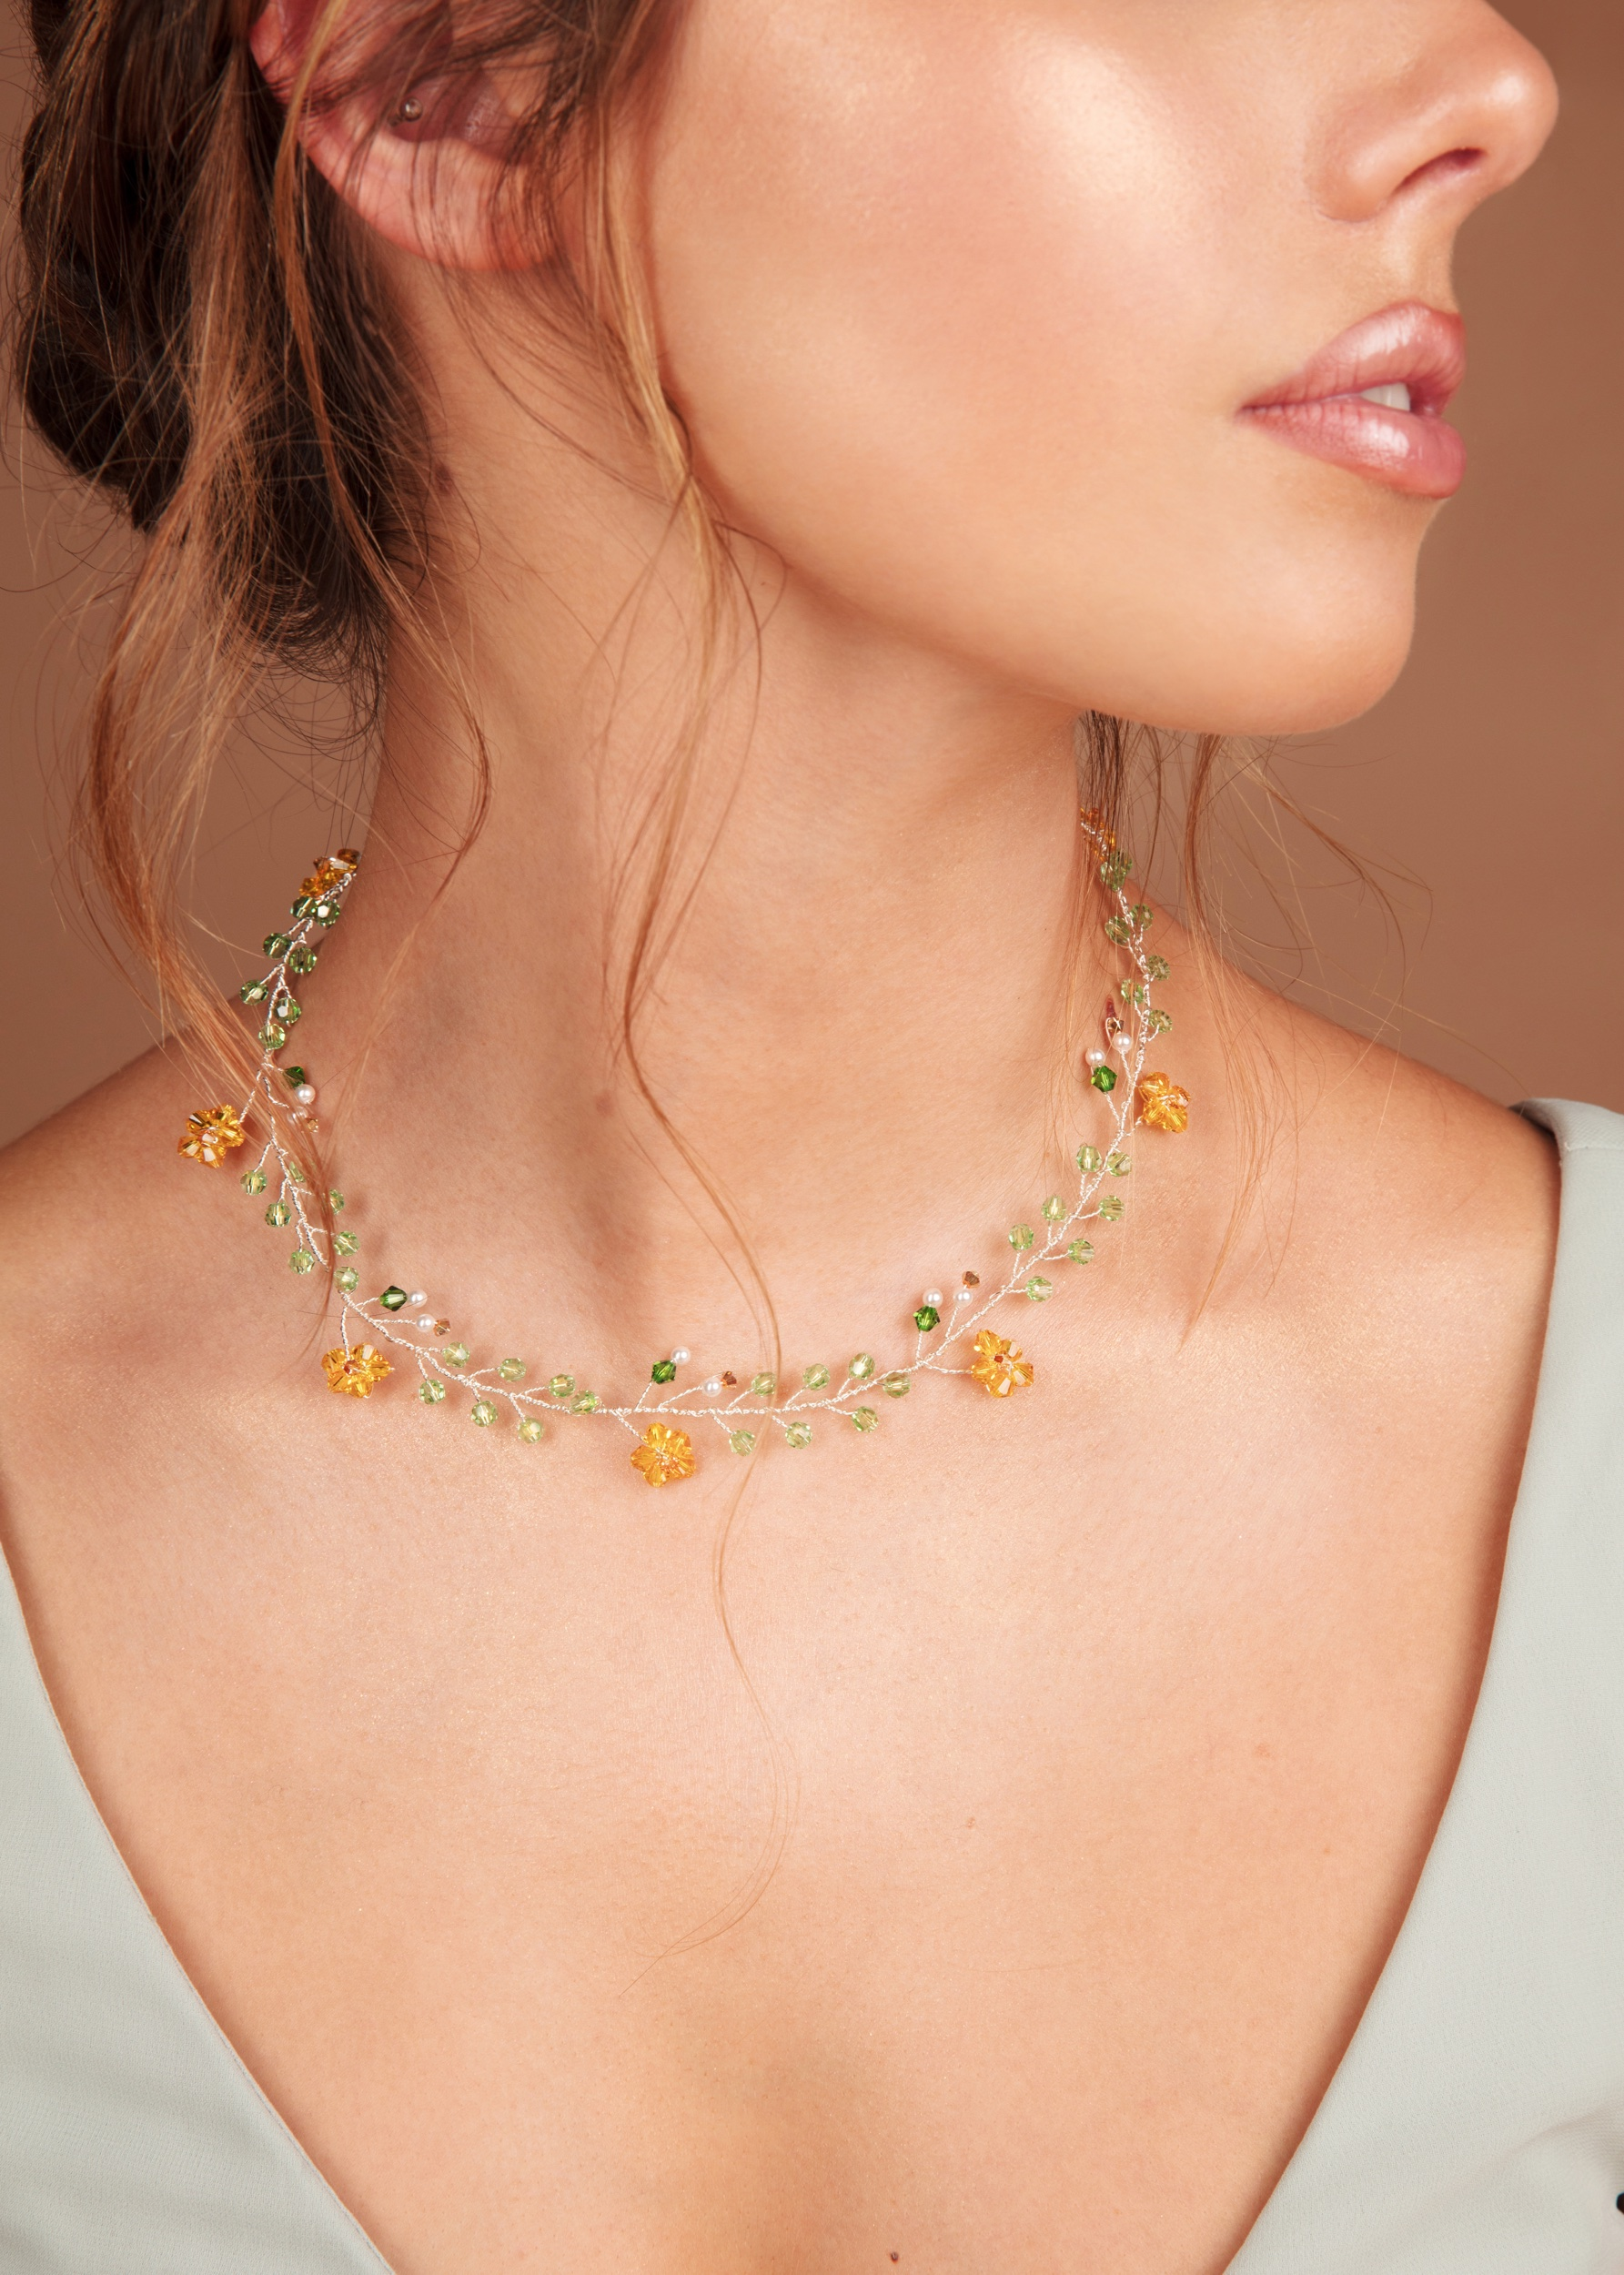 The Wreath necklace in Spring